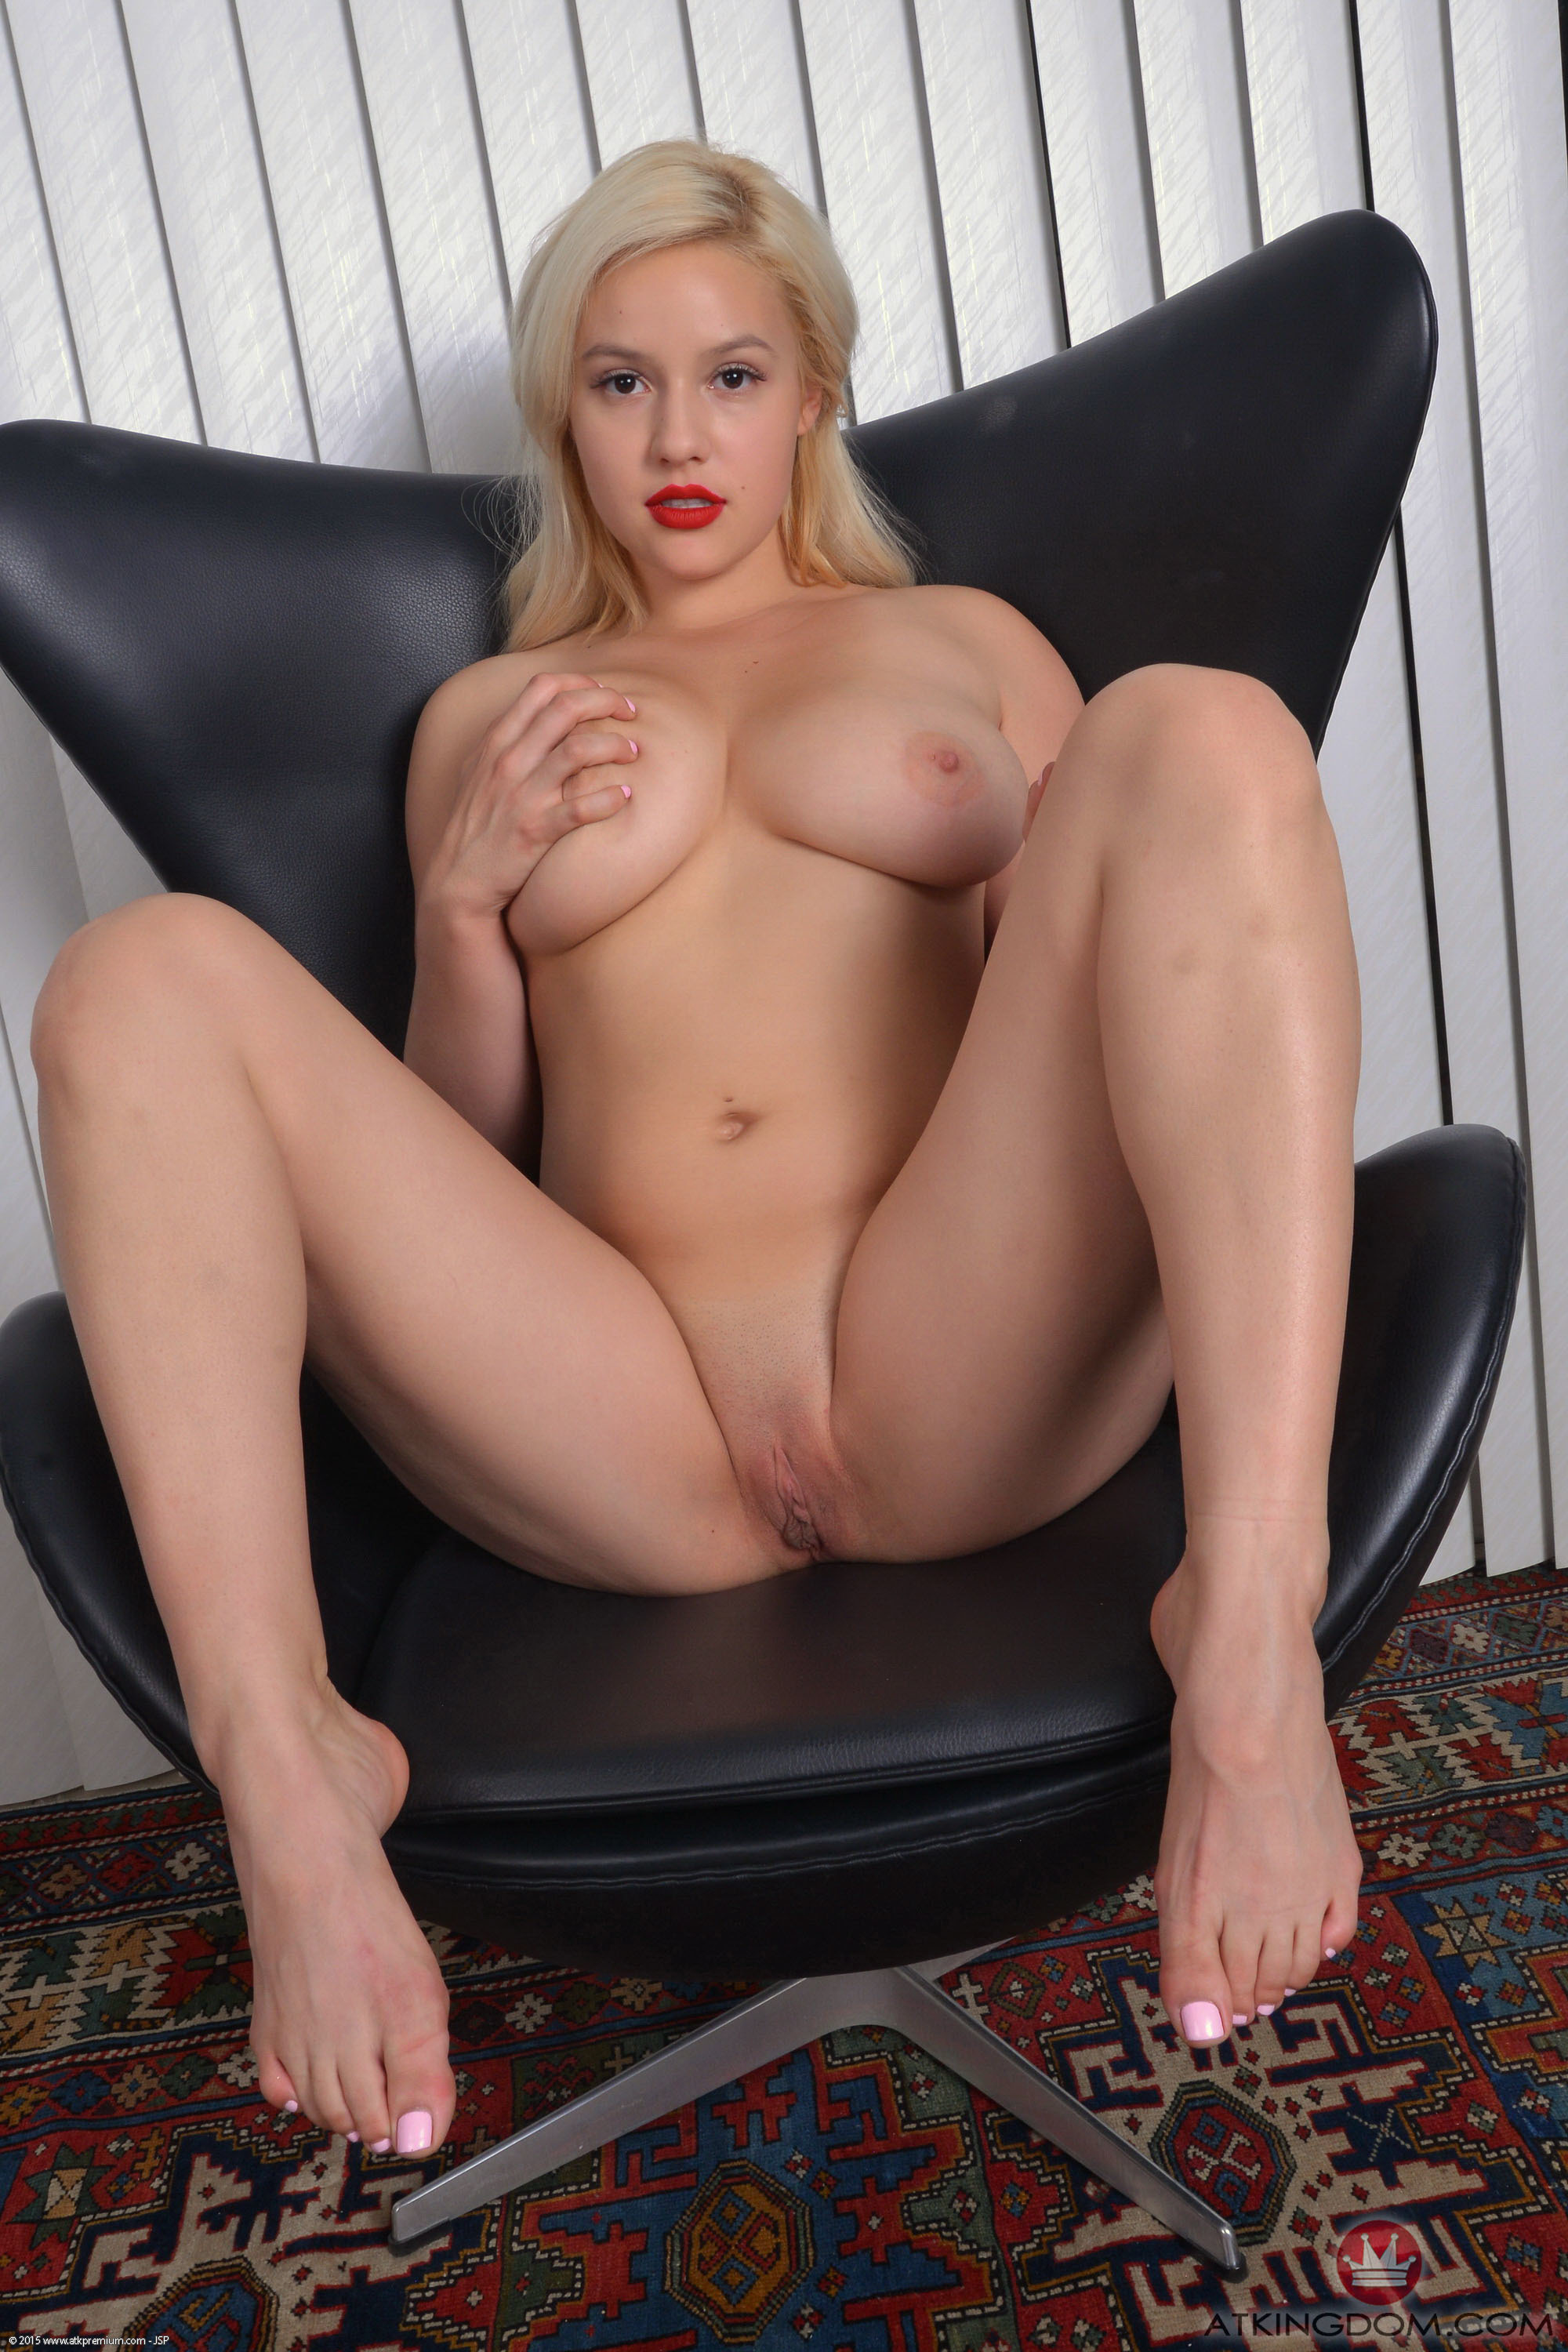 showing porn images for homemade small cock porn